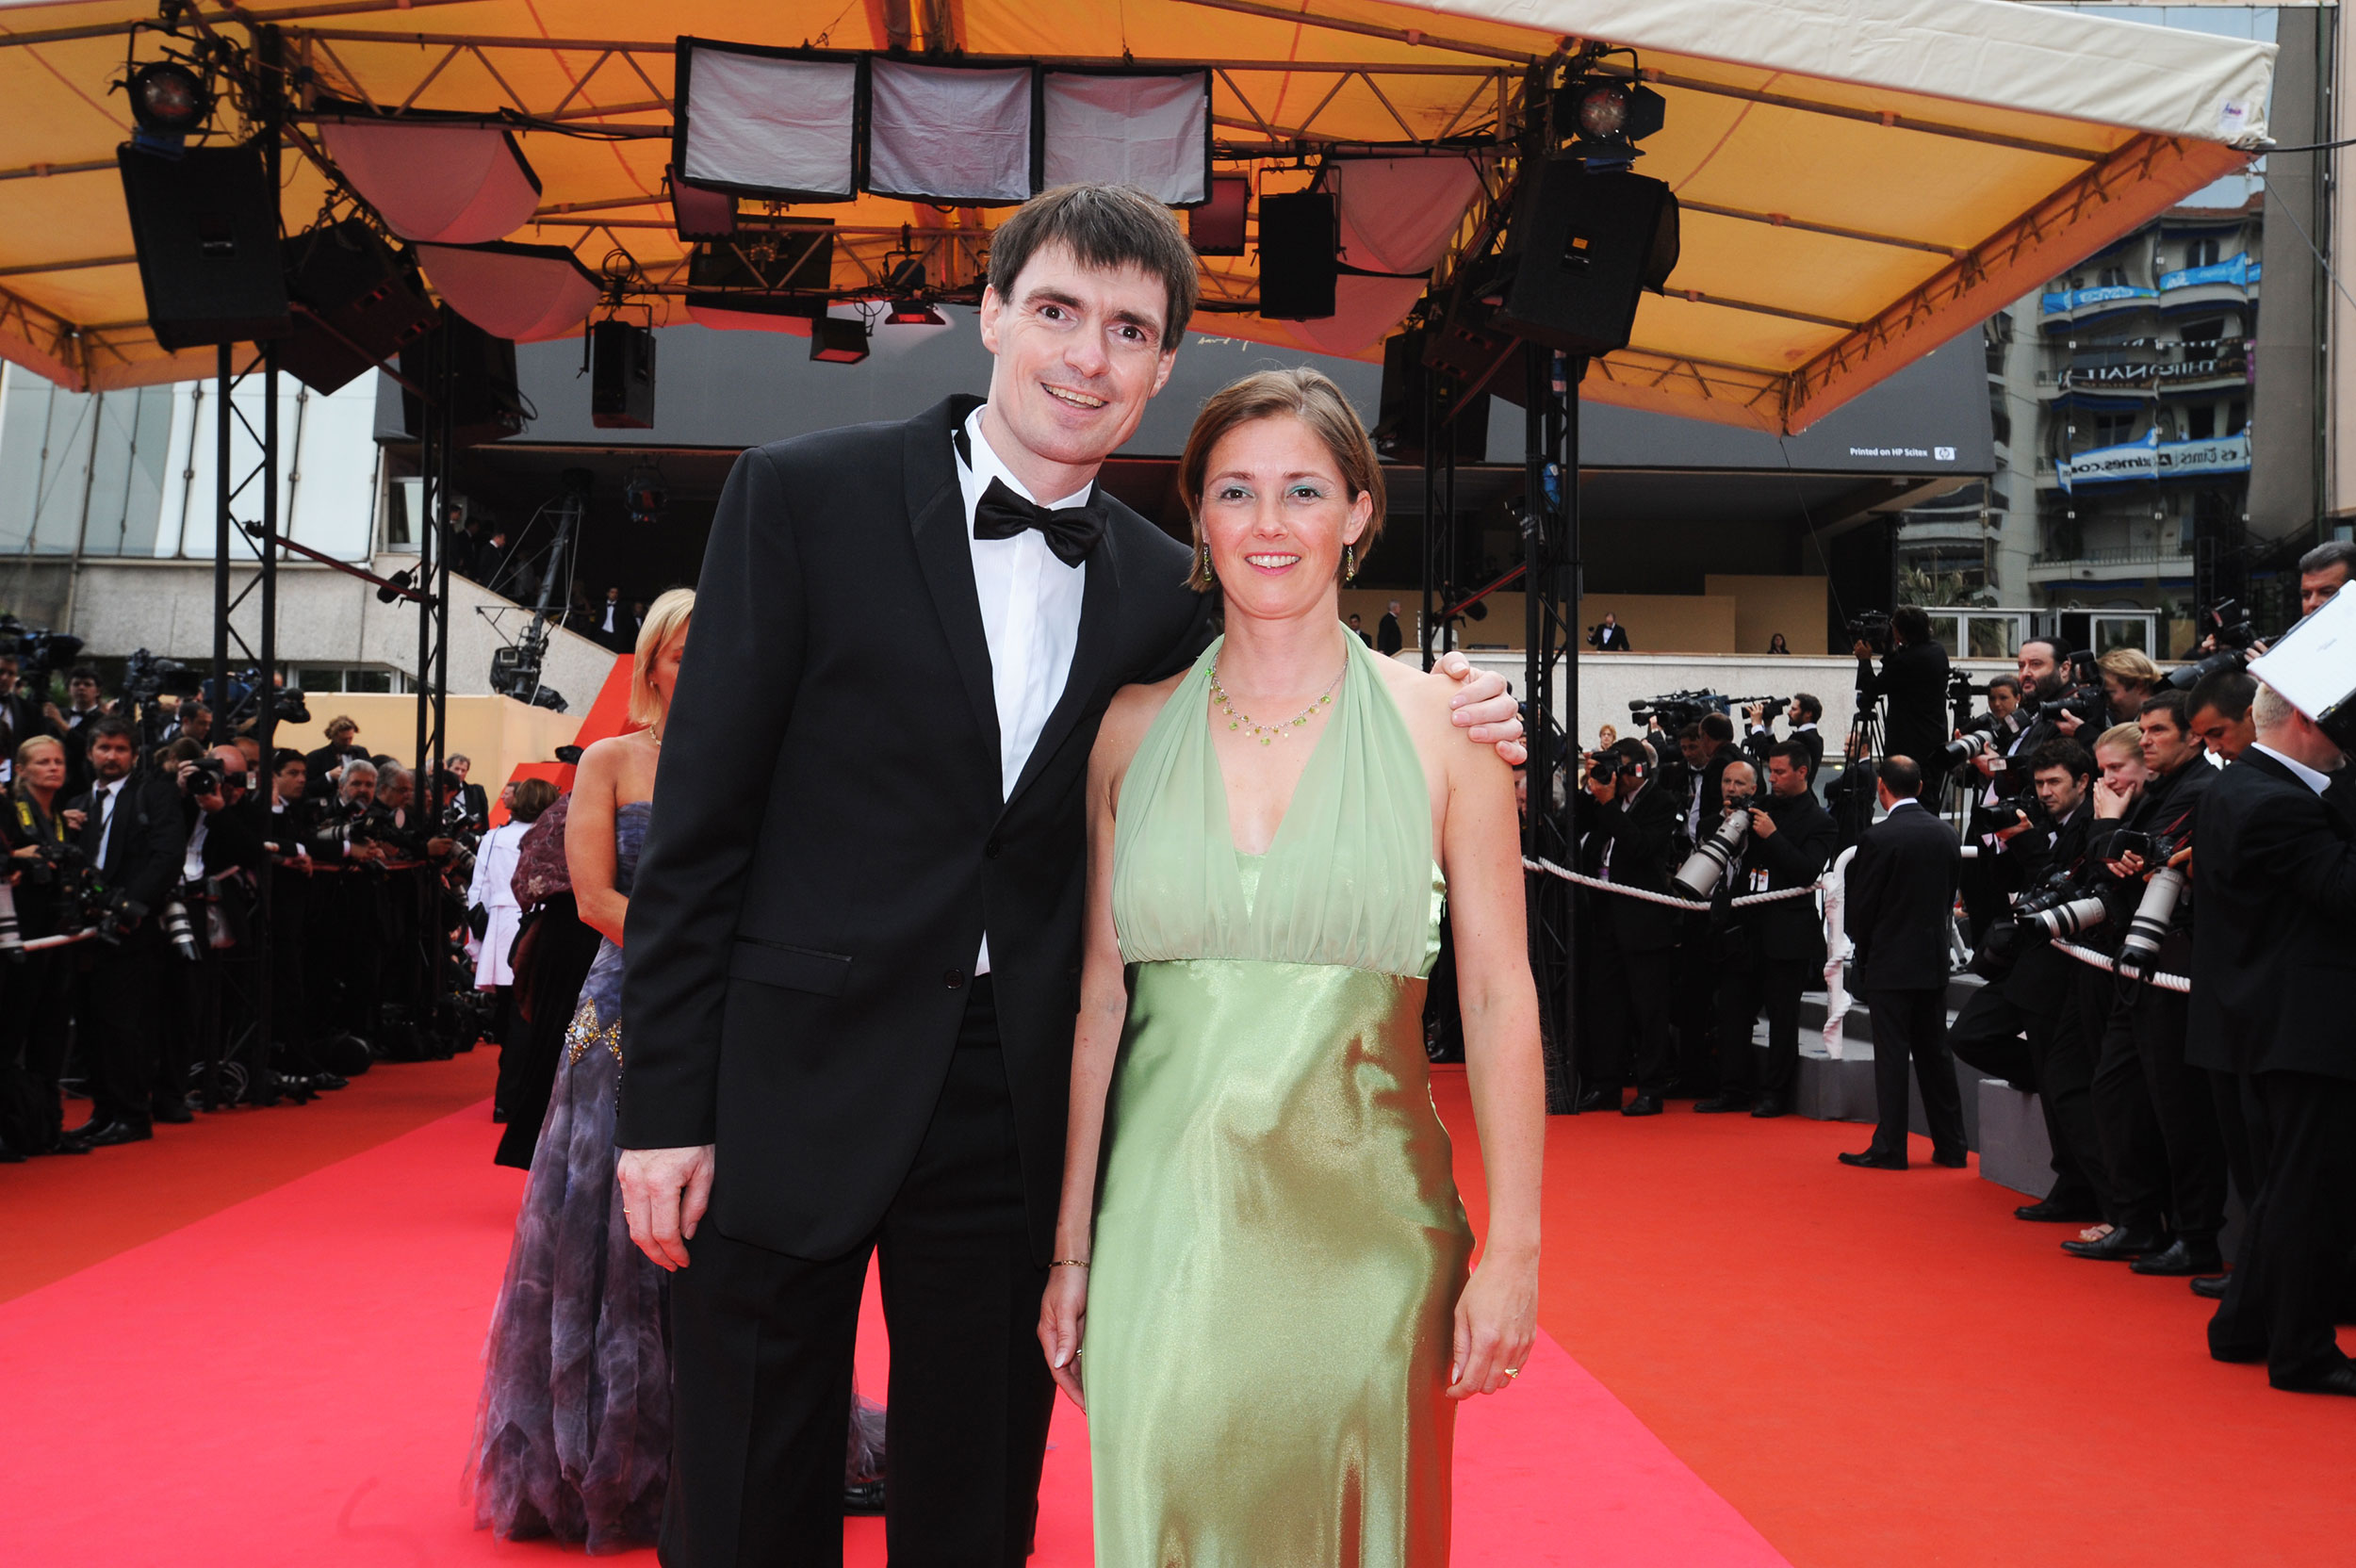 Film Festival of Cannes walking over the red carpet